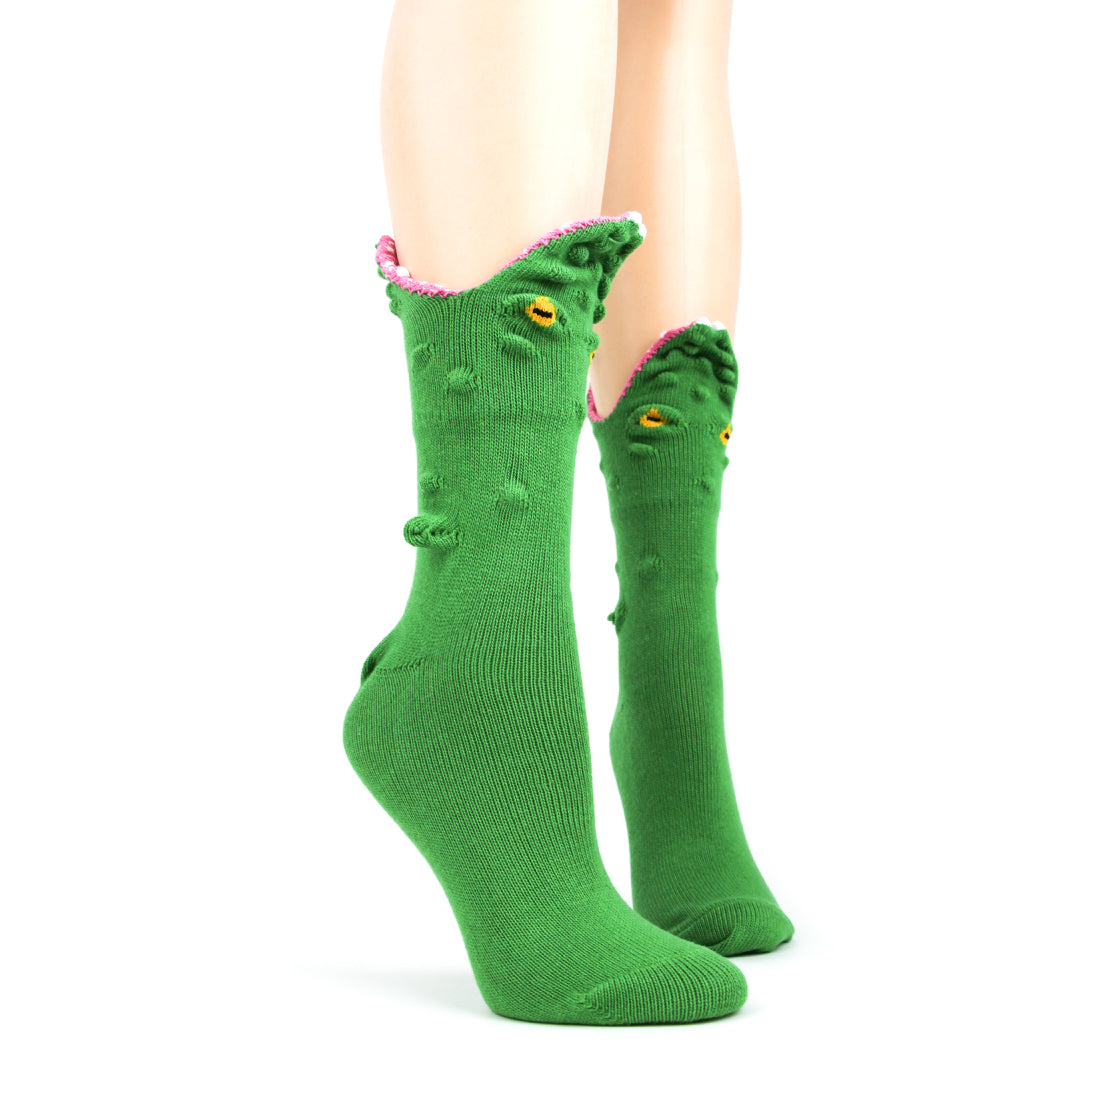 Funny alligator socks make it look like your feet are being eaten.